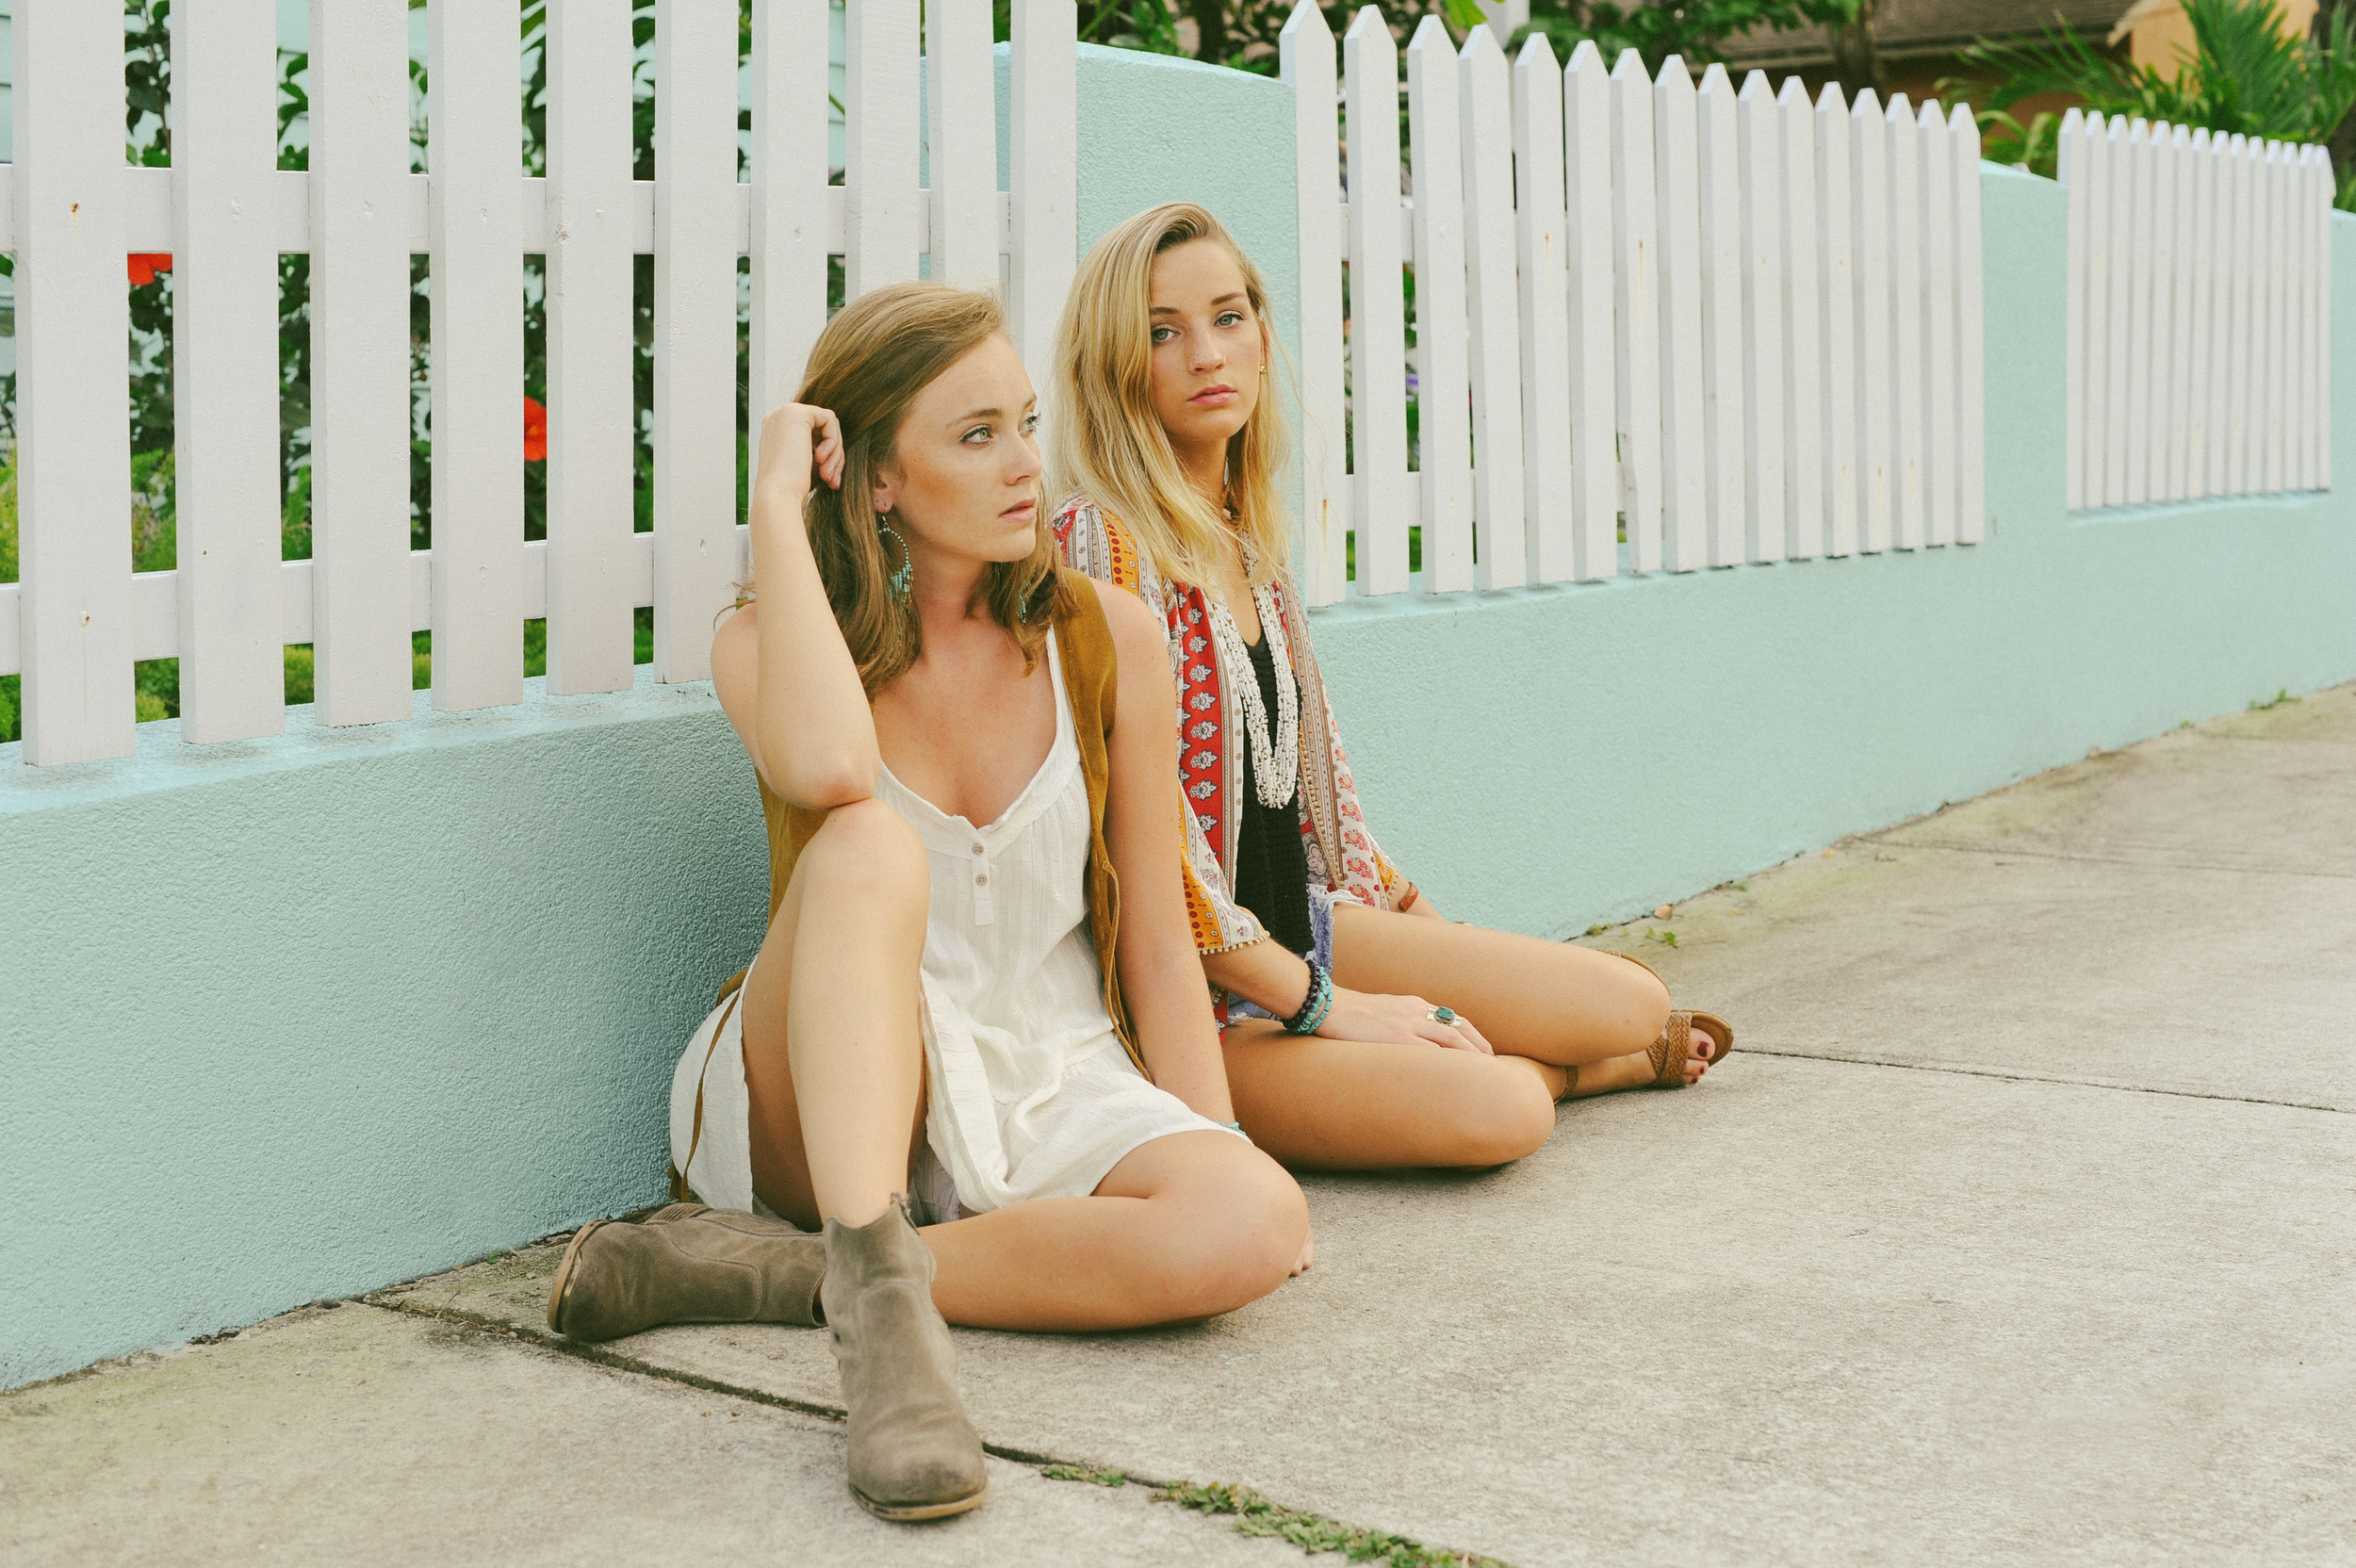 christina cernik - boho girls 1